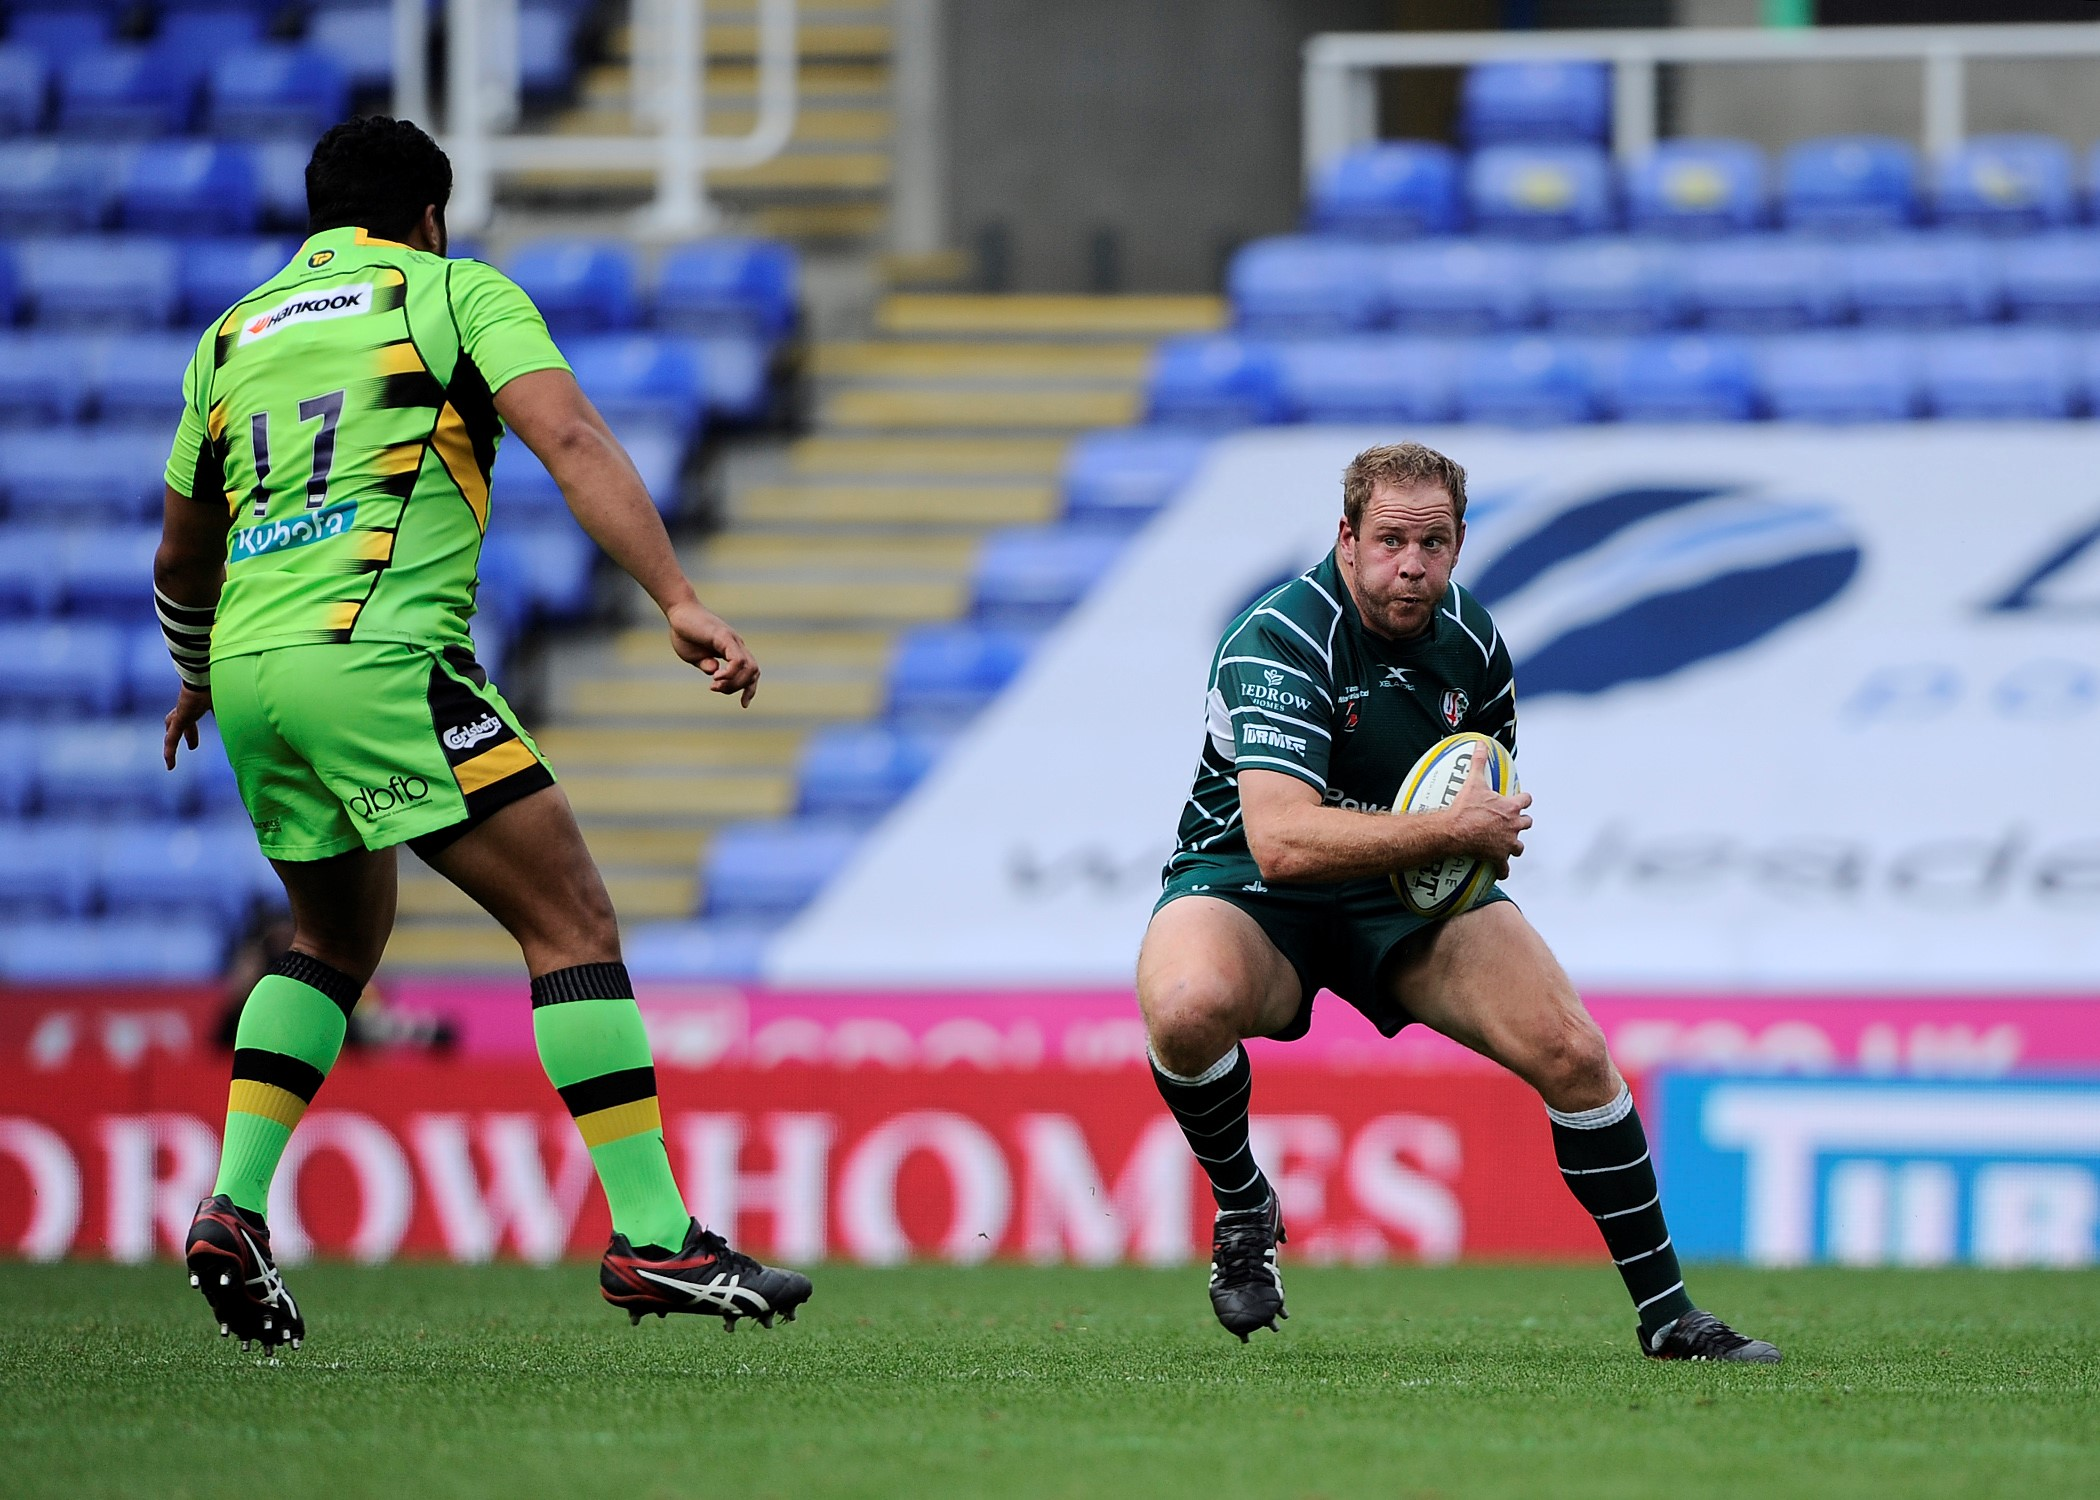 David Paice crossed for London Irish's only try against Saracens. Picture: David M.Moore.